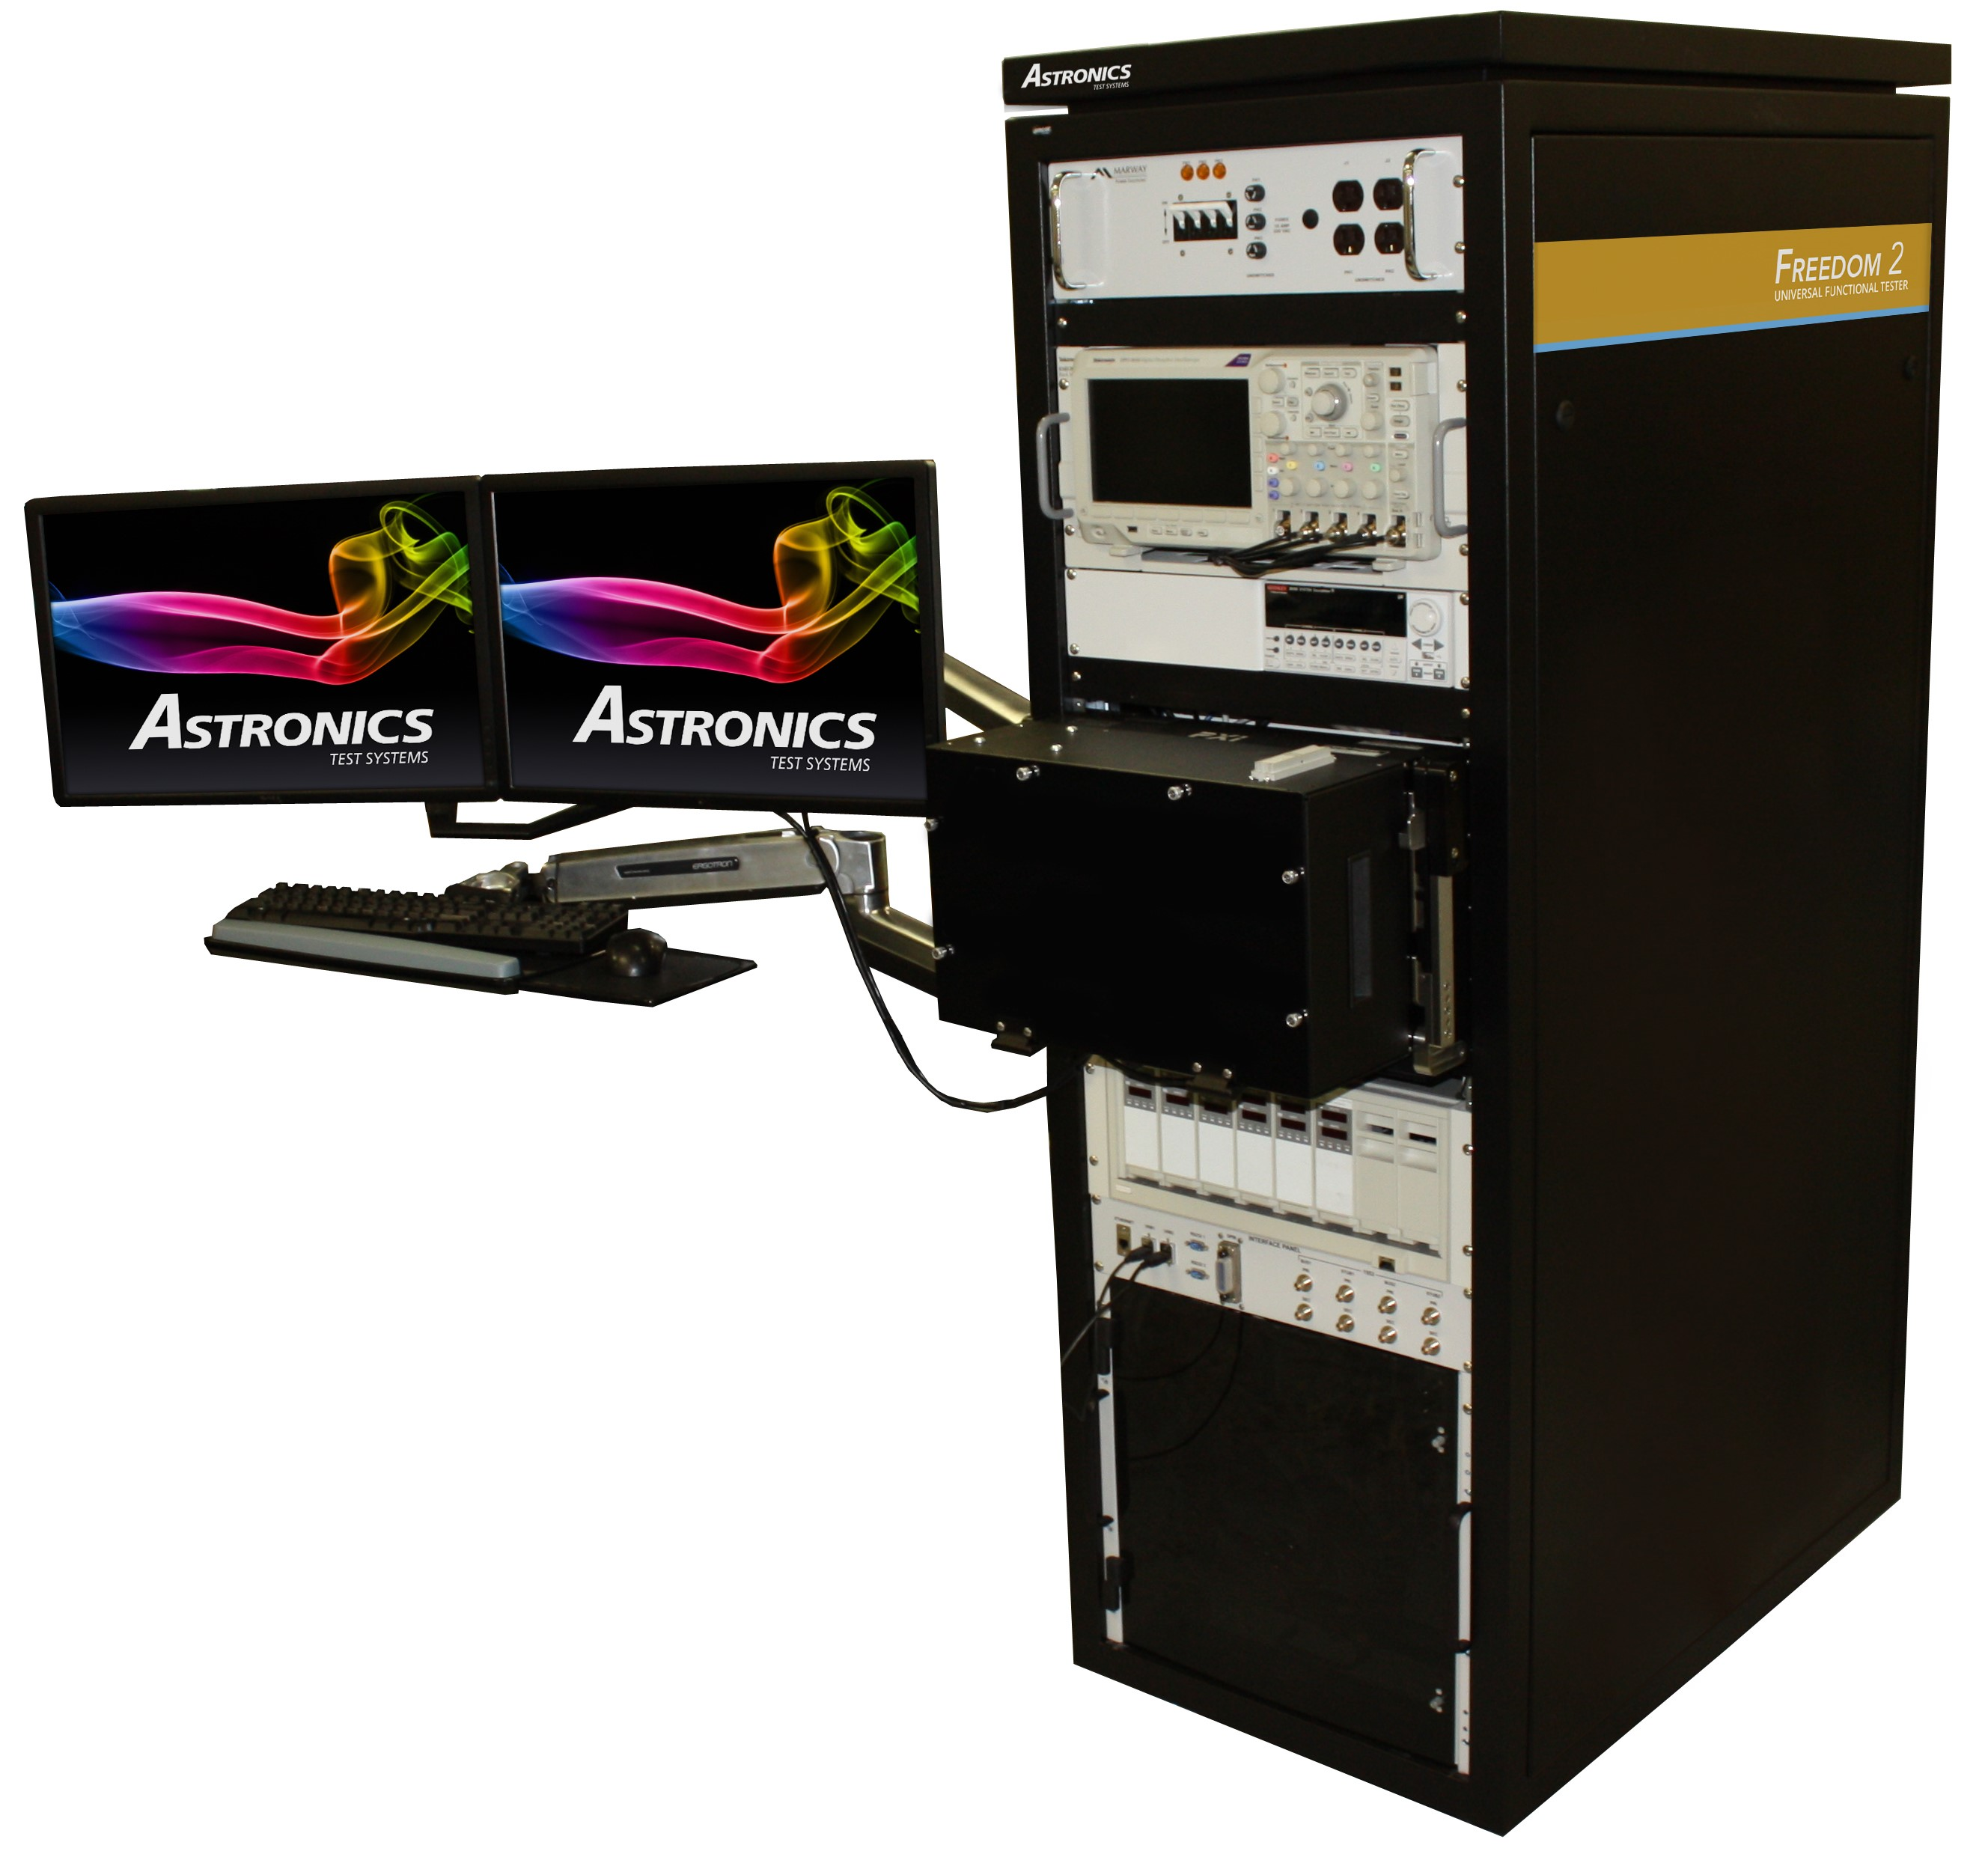 Consolidated Automated Bench Test Equipment From Astronics